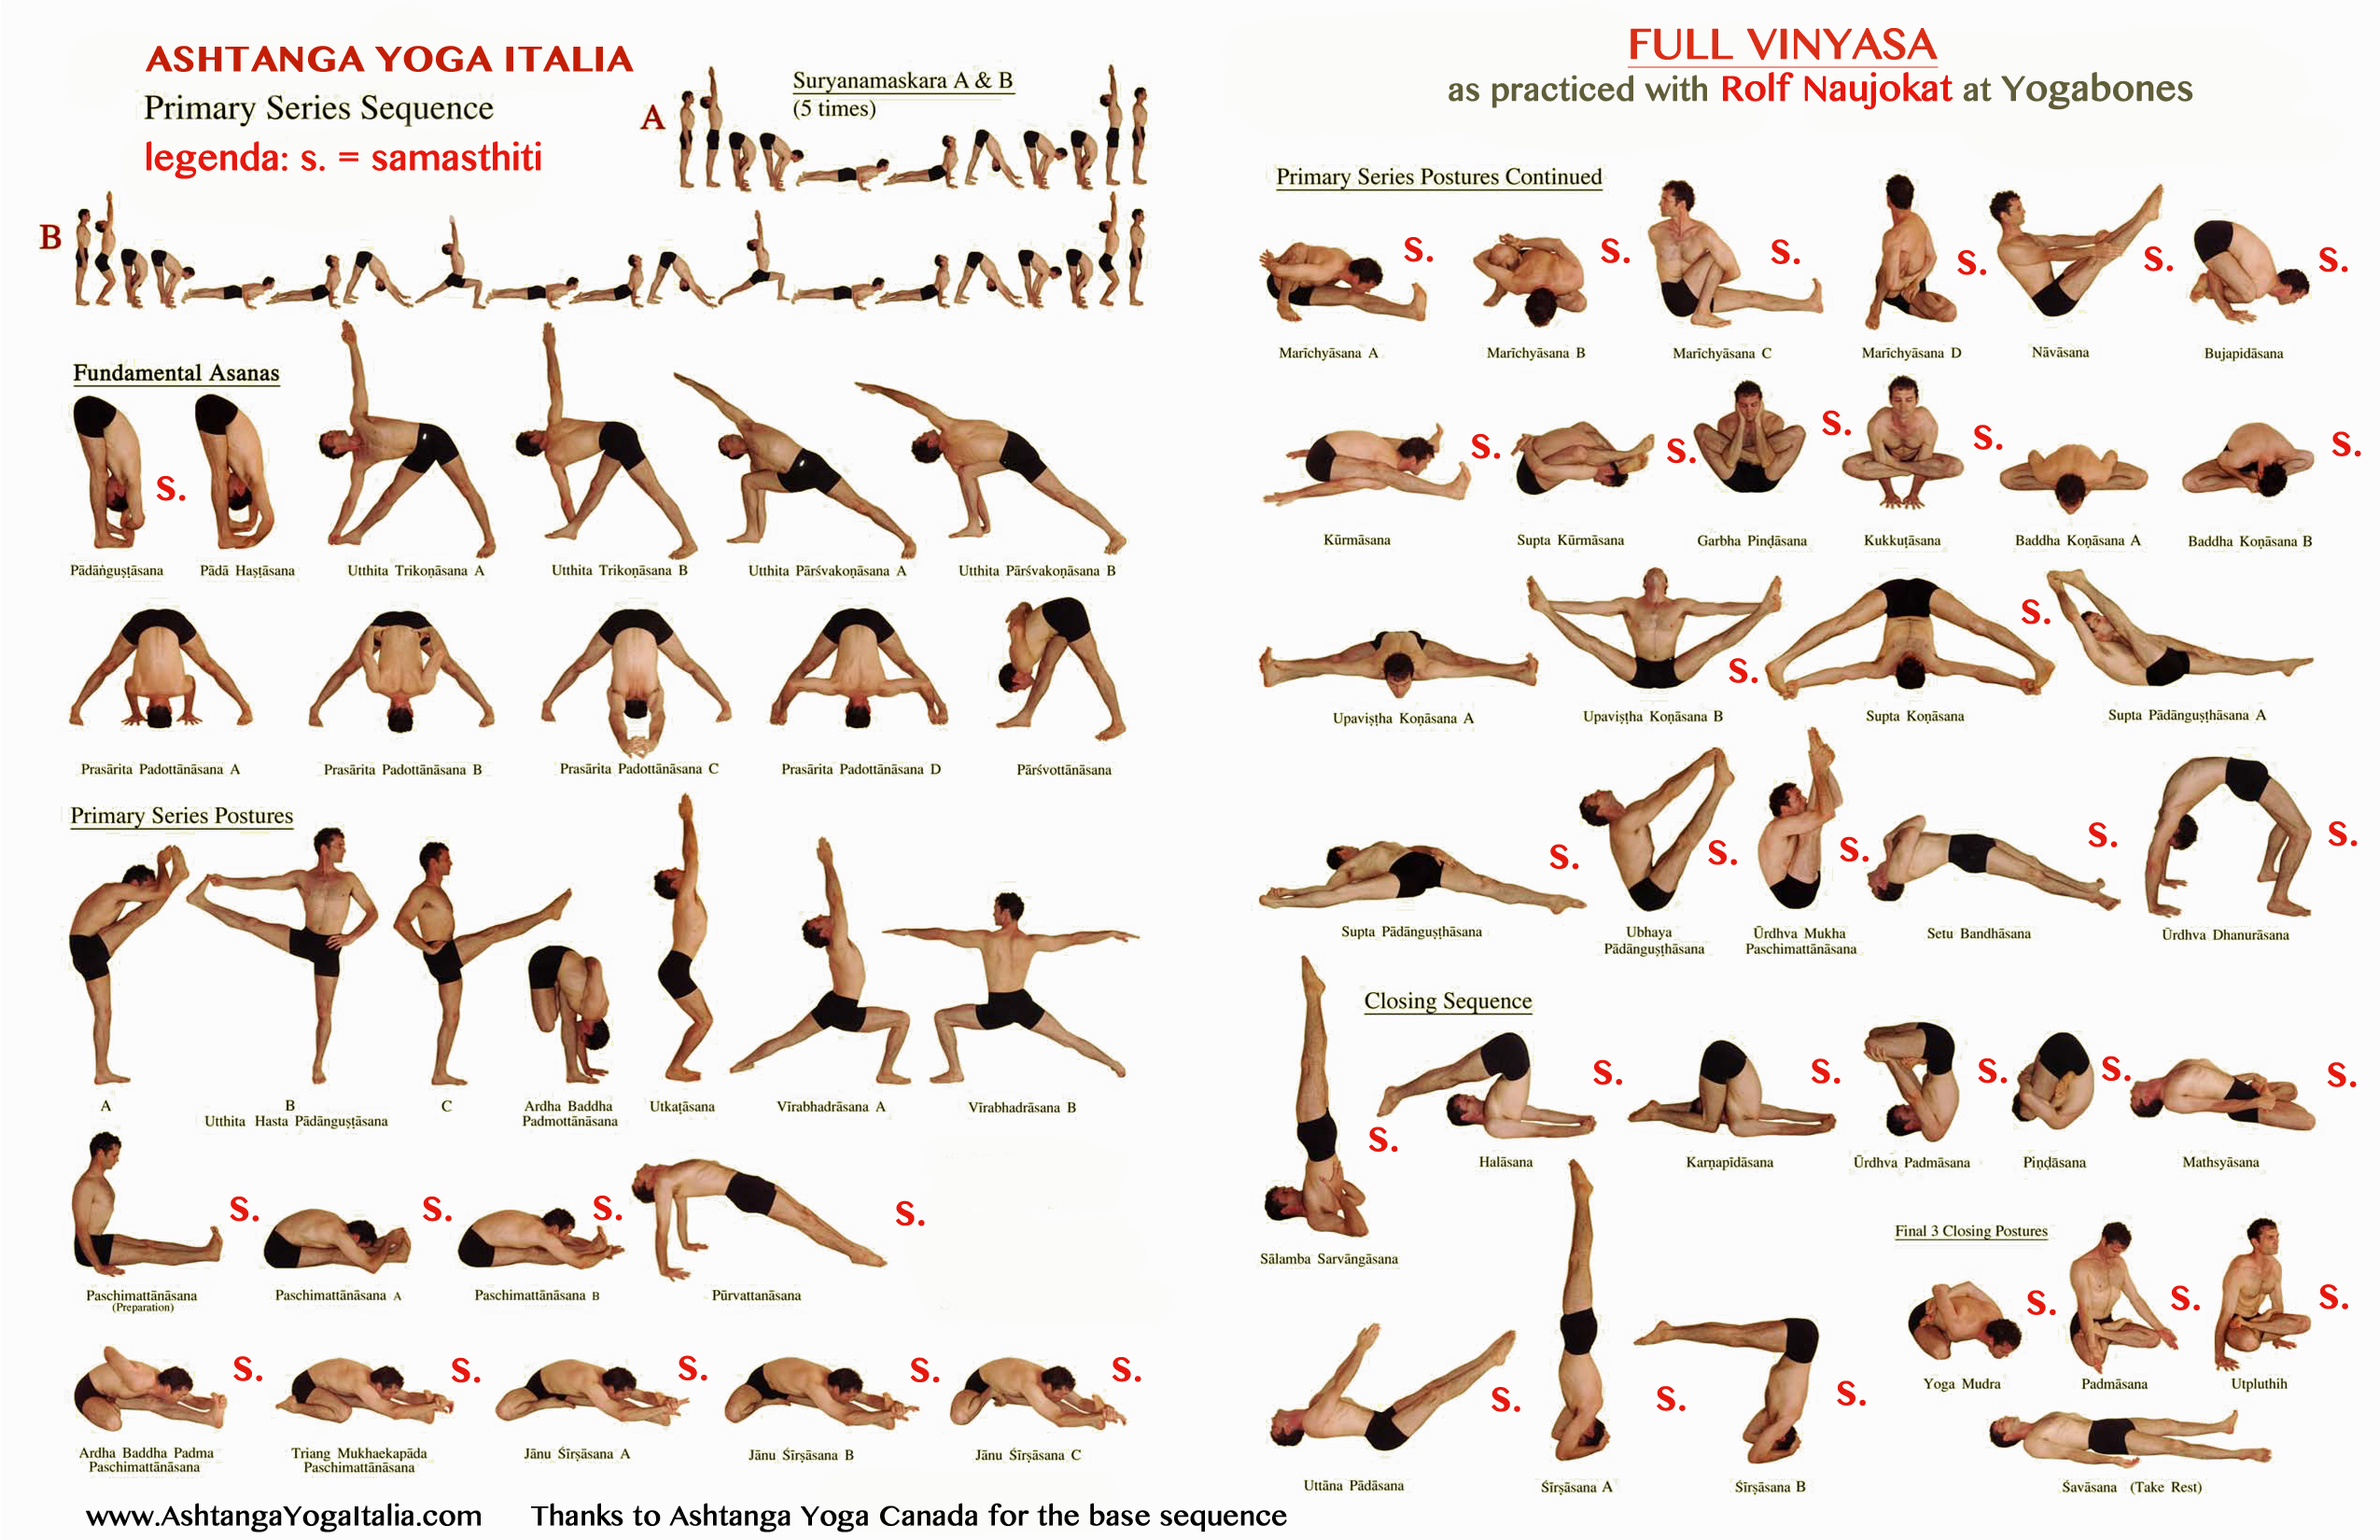 FULL VINYASA, AS PRACTICED WITH ROLF NAUJOKAT | Ashtanga Yoga Italia